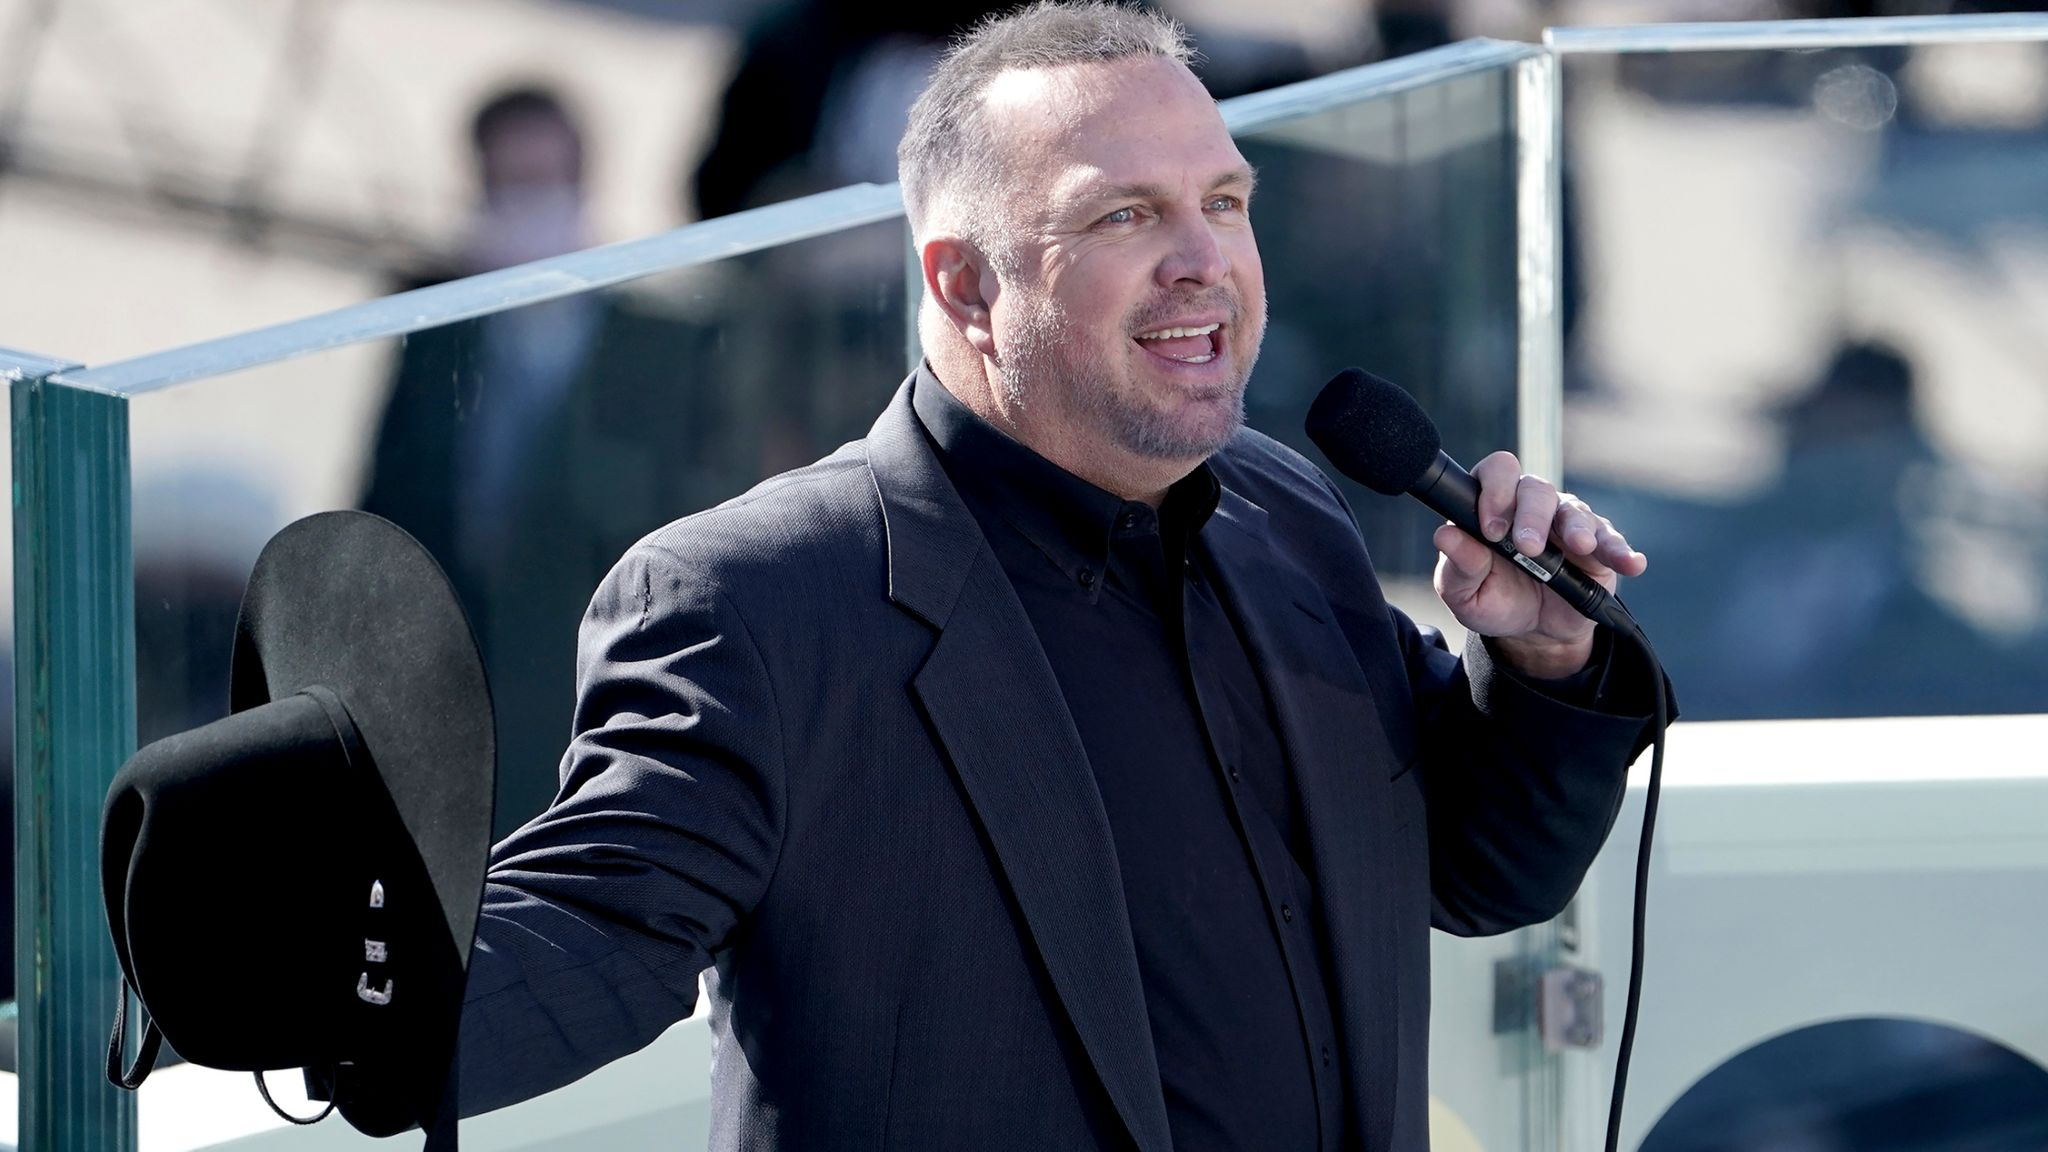 Garth Brooks performed at the ceremony. Pic: AP